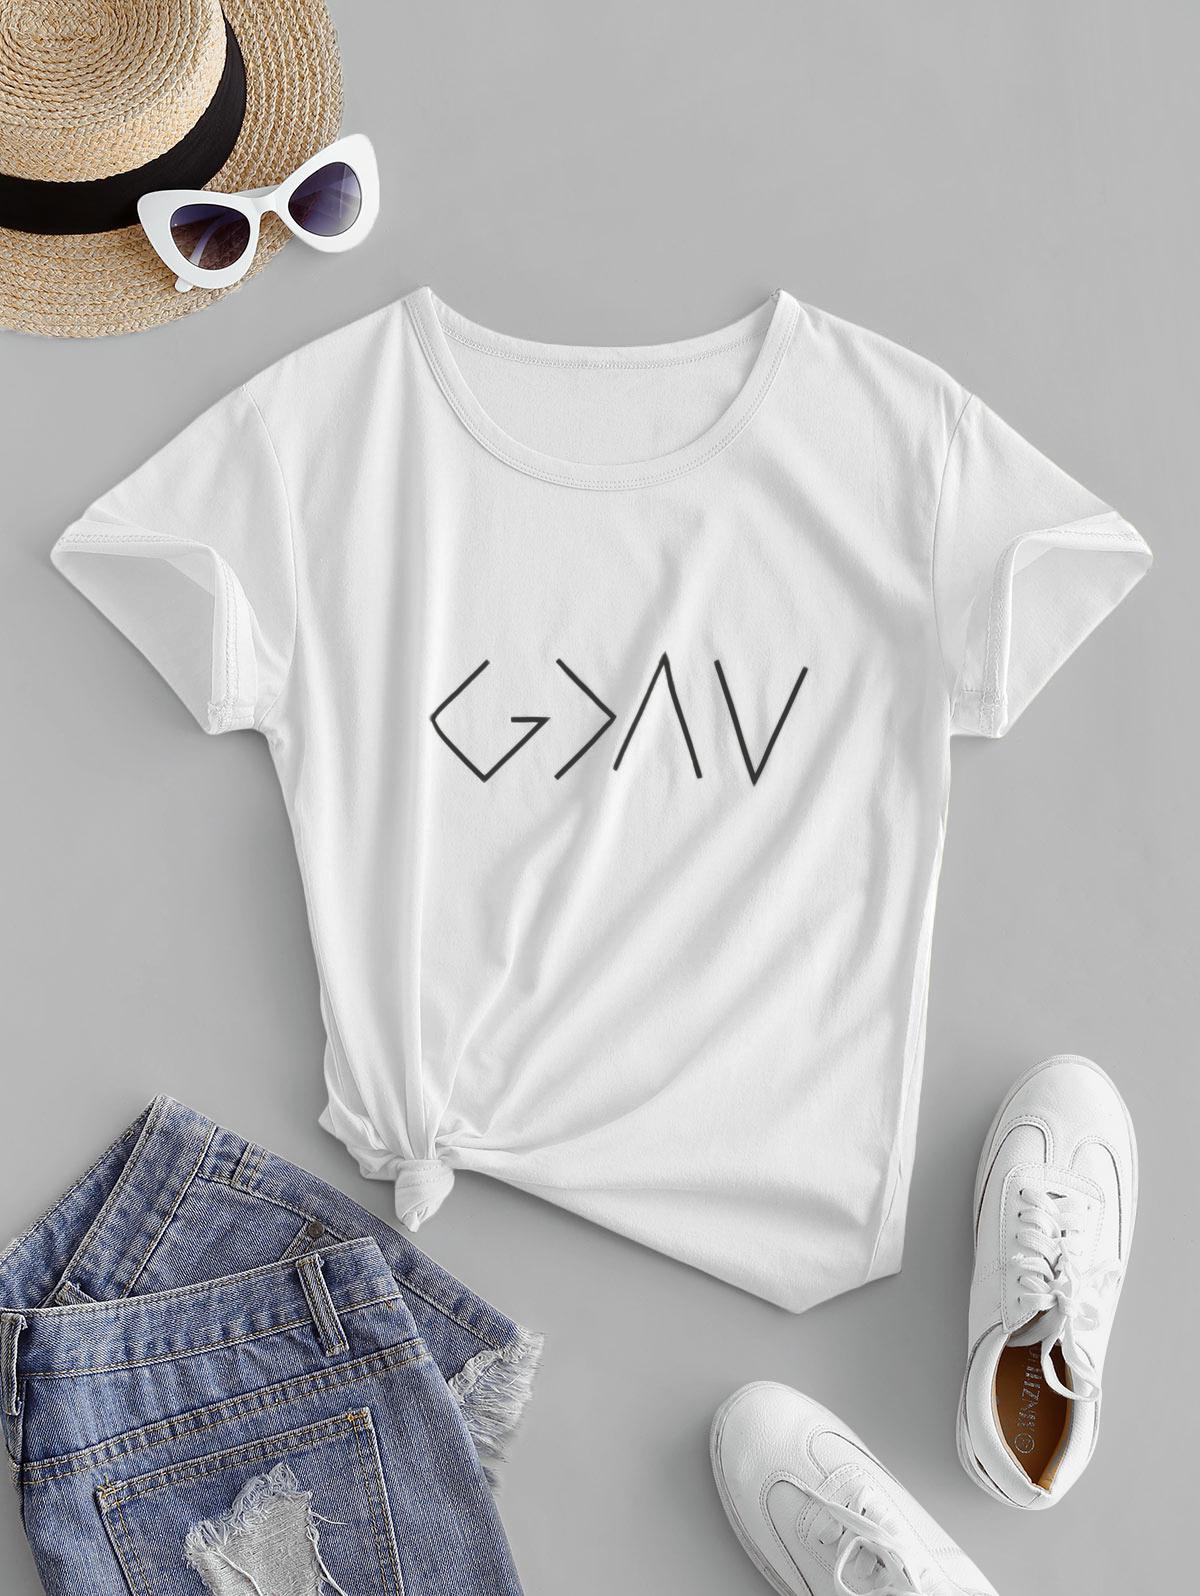 Cotton Graphic Short Sleeves Tee